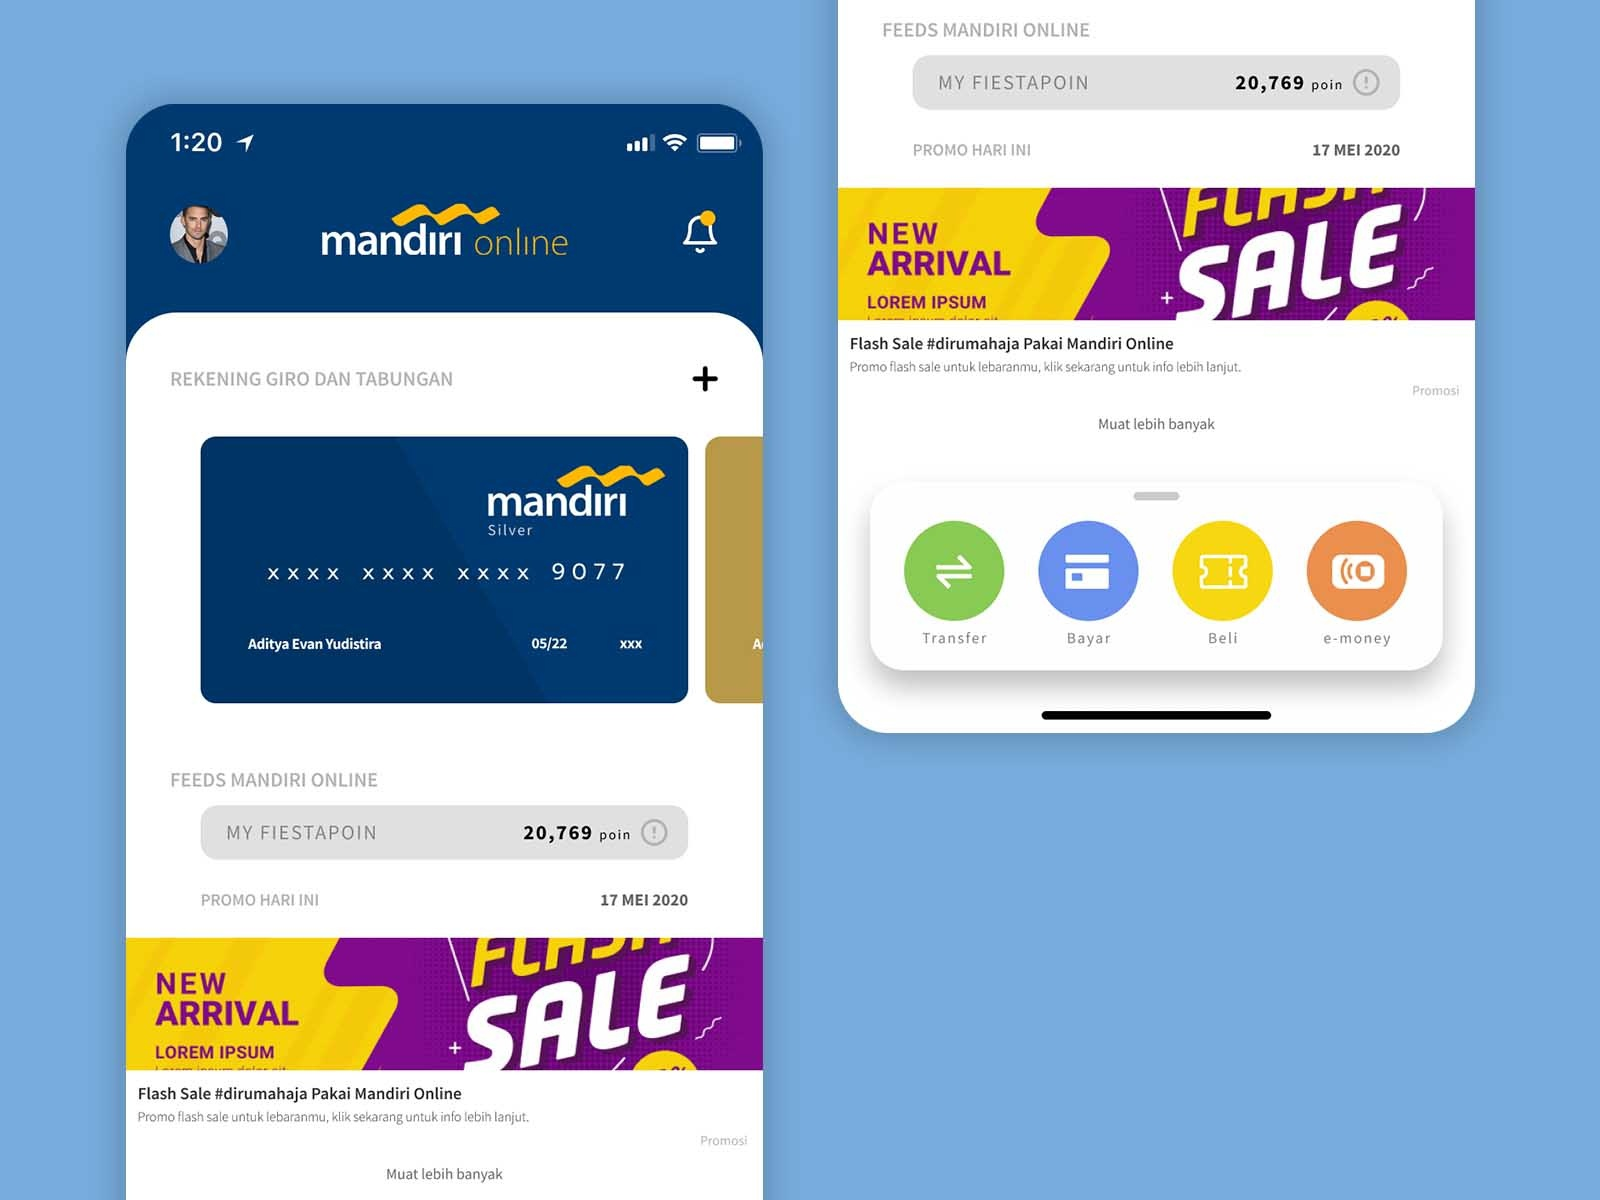 Mandiri Online App Redesign By Evan Yudistira On Dribbble